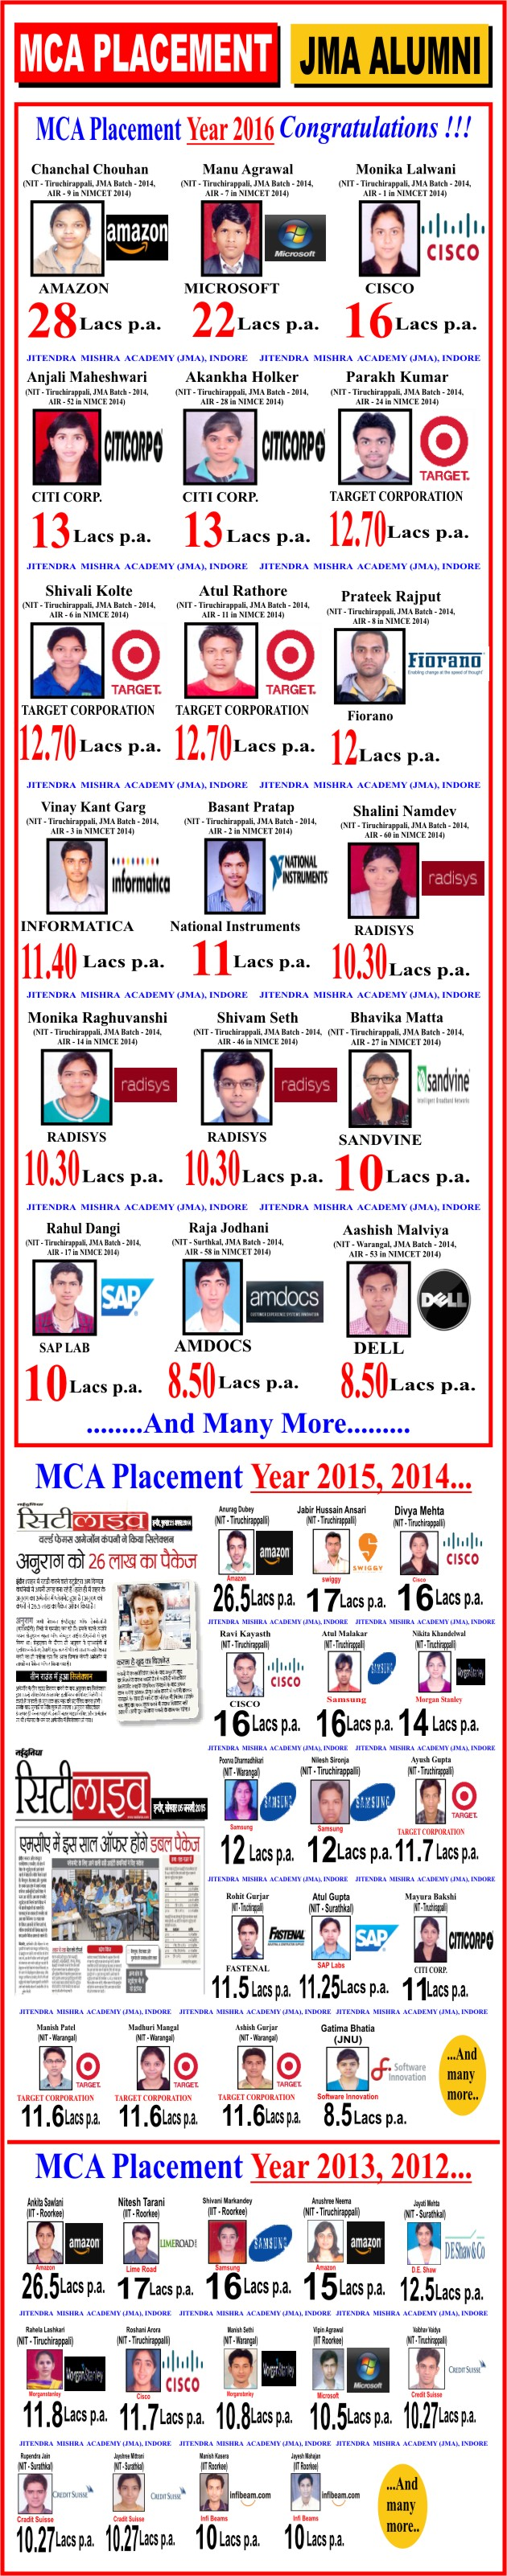 mca-placement-201607